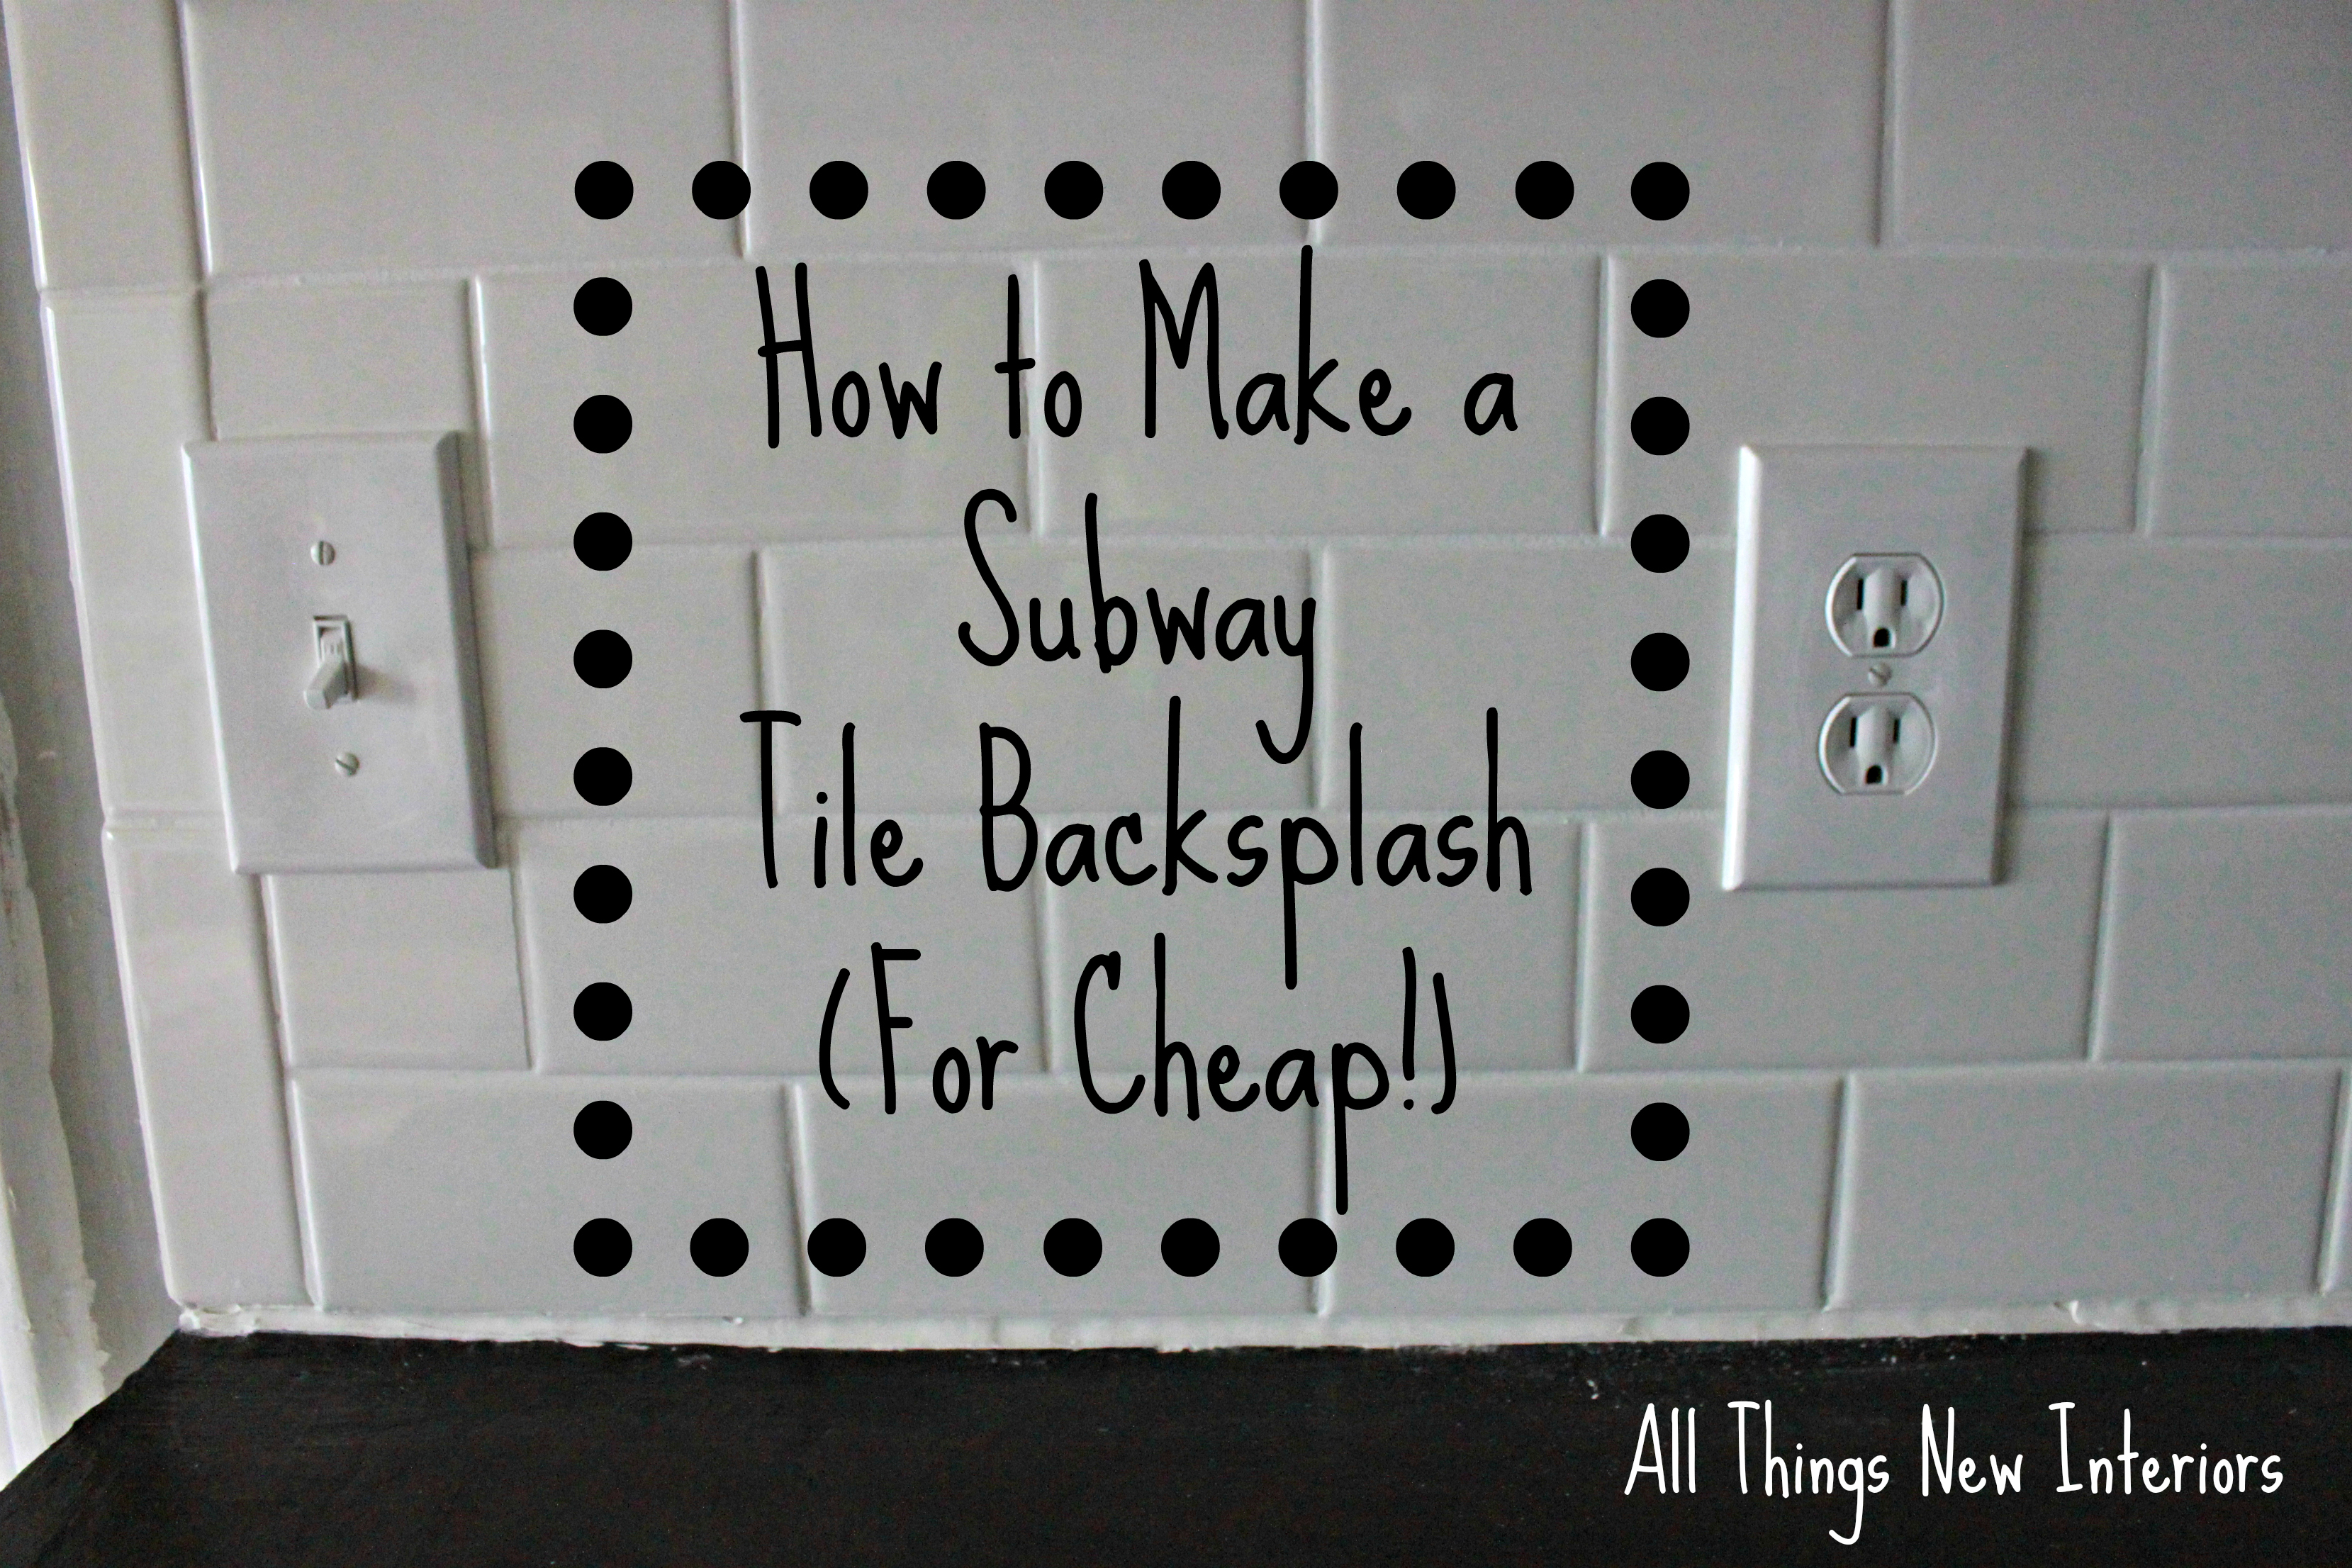 How to make a subway tile backsplash for cheap all things new img0663backsplash dailygadgetfo Images